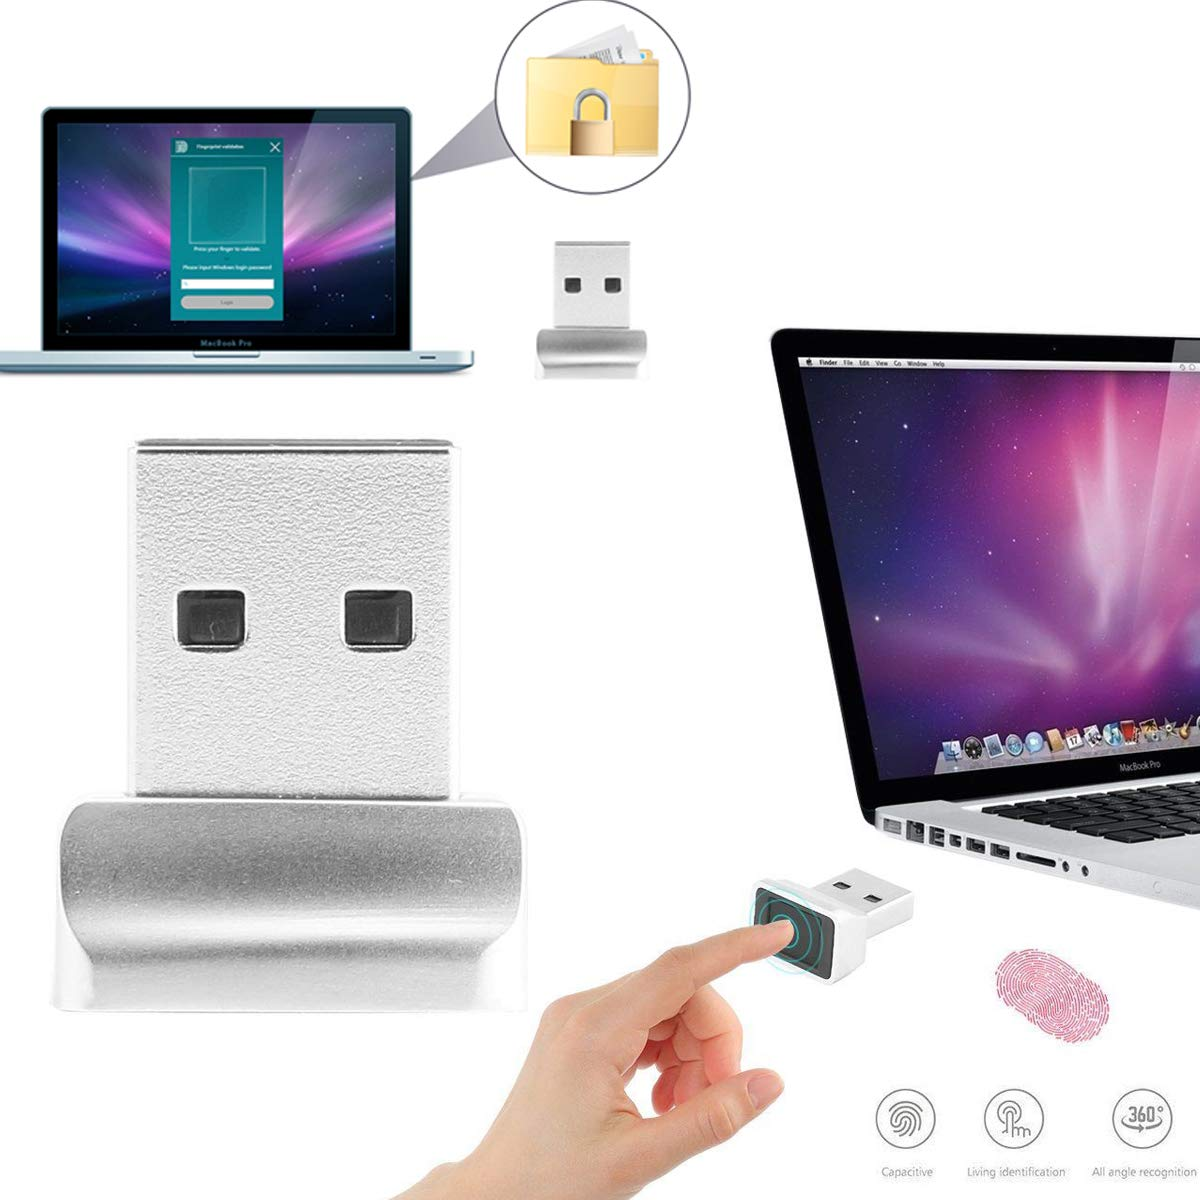 ONEVER Powstro USB Lector de Huellas Digitales, Windows 10 Hello portátil/PC Mini Bloqueo de Seguridad rápida señal en Clave (10PCS): Amazon.es: Electrónica